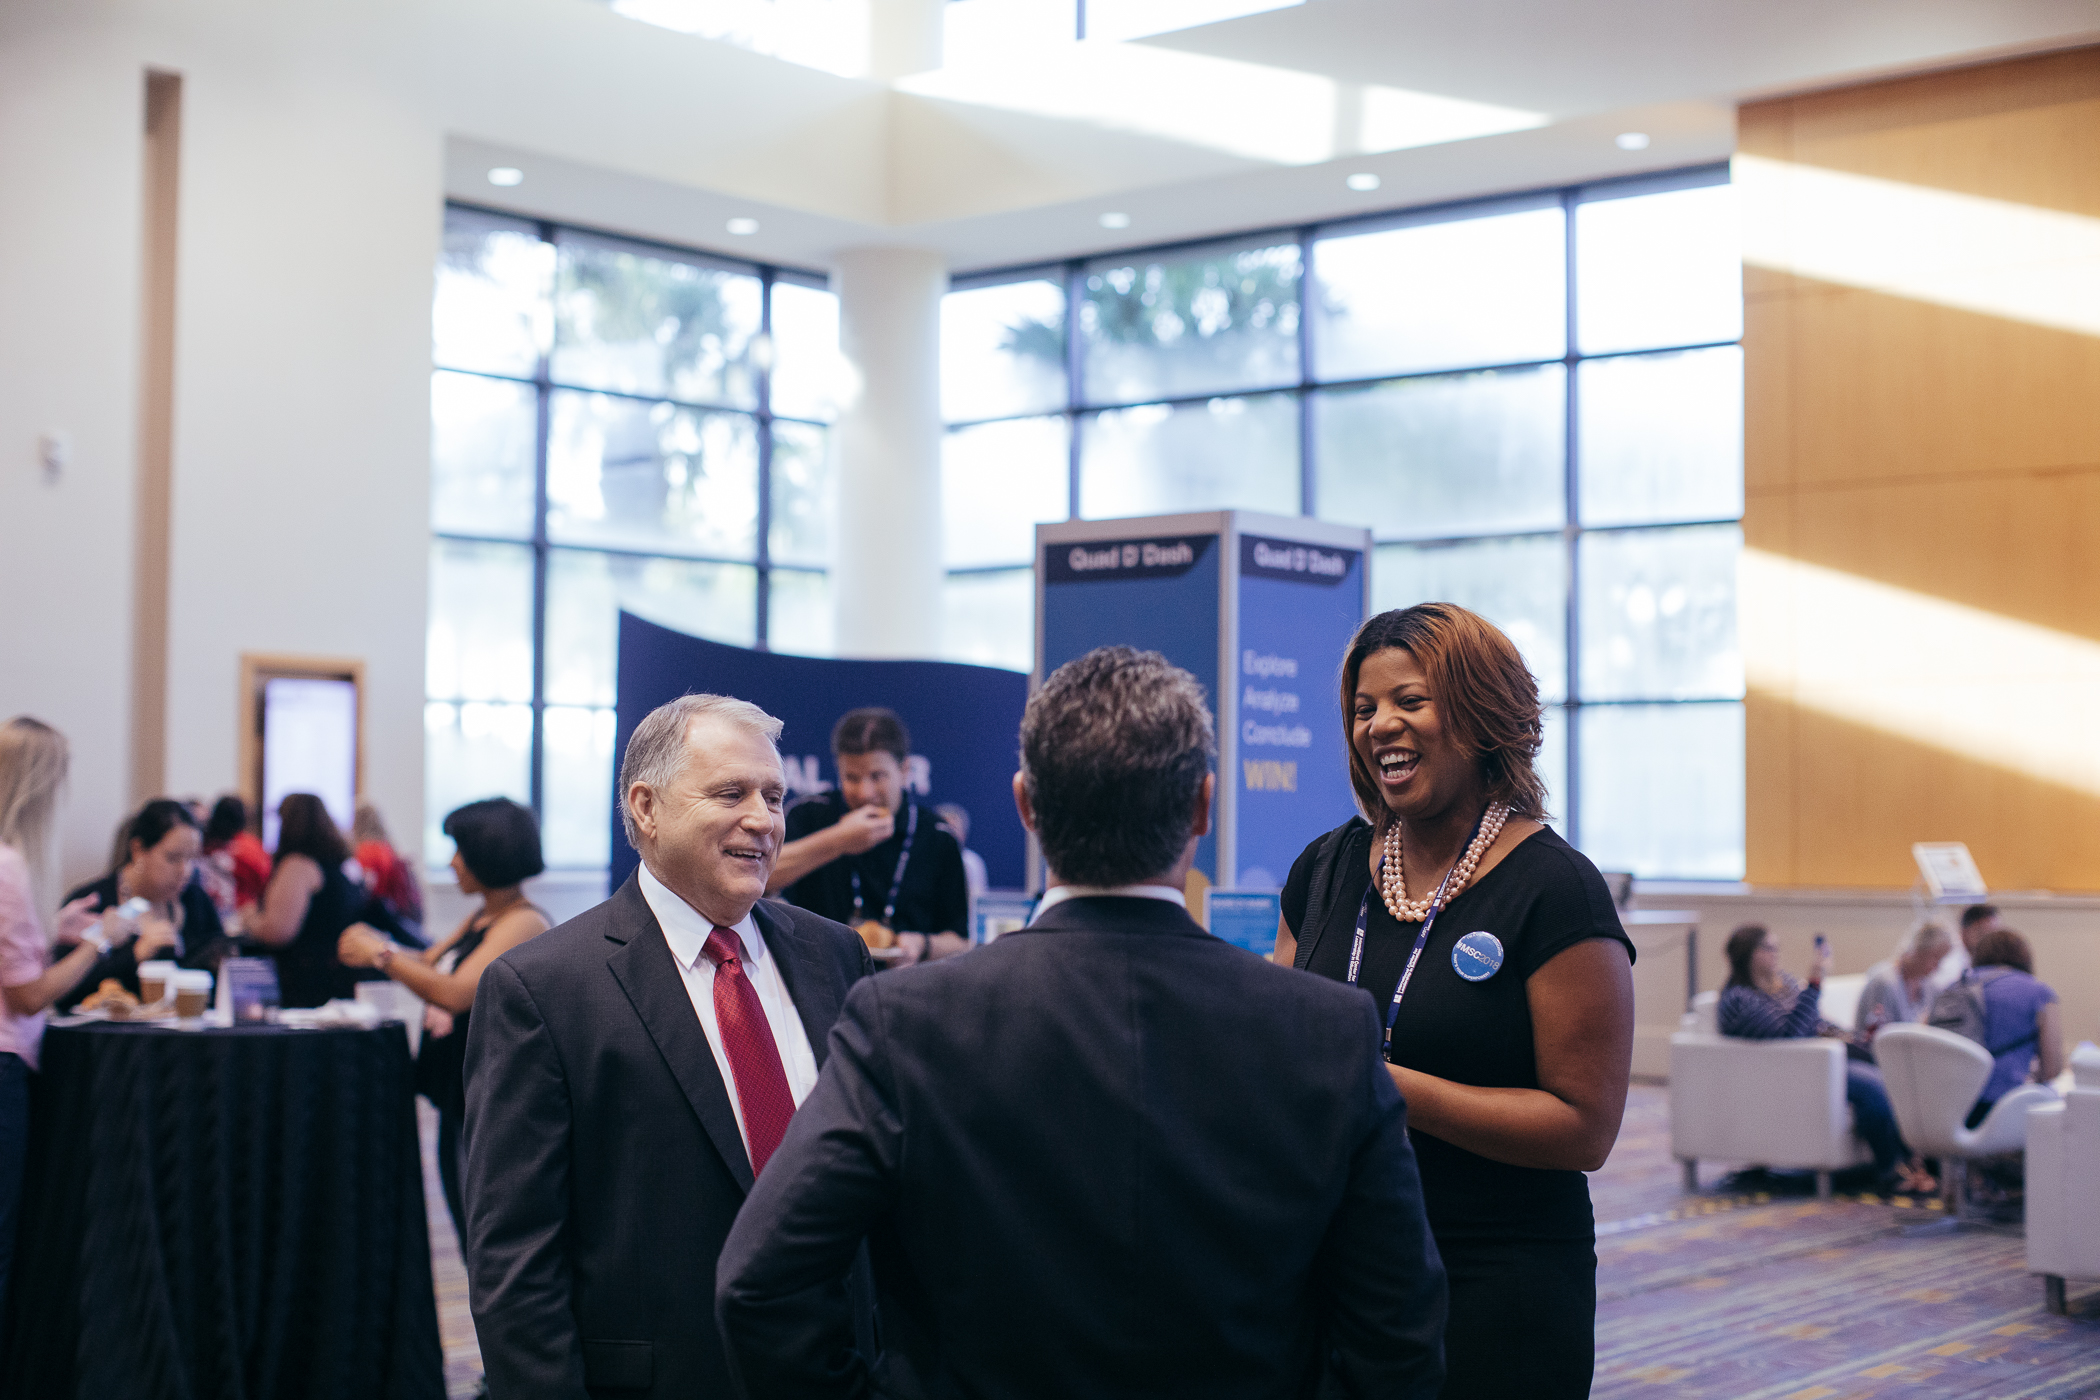 live event commercial photography brand storytelling for education florida conference photographer ©2018abigailbobophotography-133.jpg